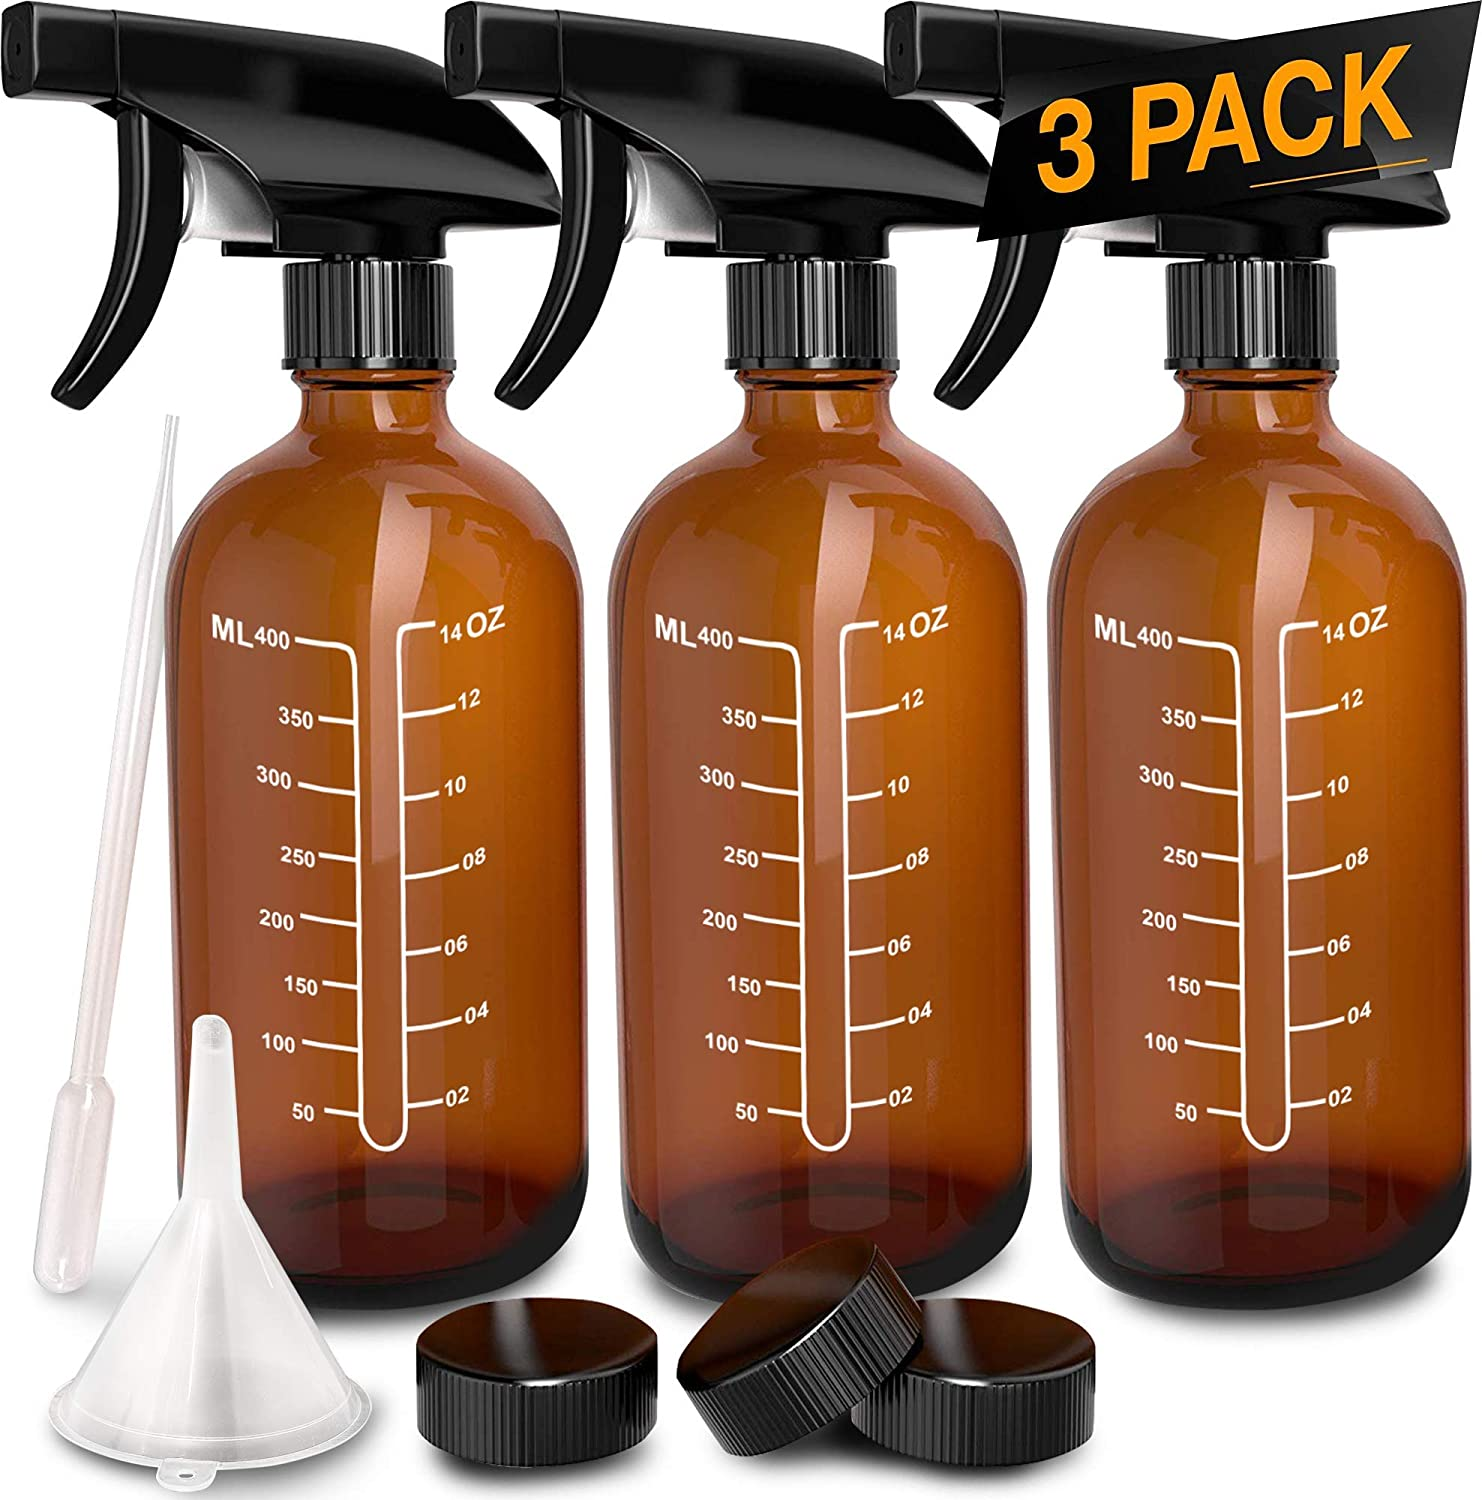 3 Pack - Refillable Empty Amber Glass Spray Bottles [Free Phenolic Cap, Pipette and Funnel] for Cleaning Solutions, Hair, Essential Oils, Plants - Trigger Sprayer with Mist and Single Mode (16 OZ)